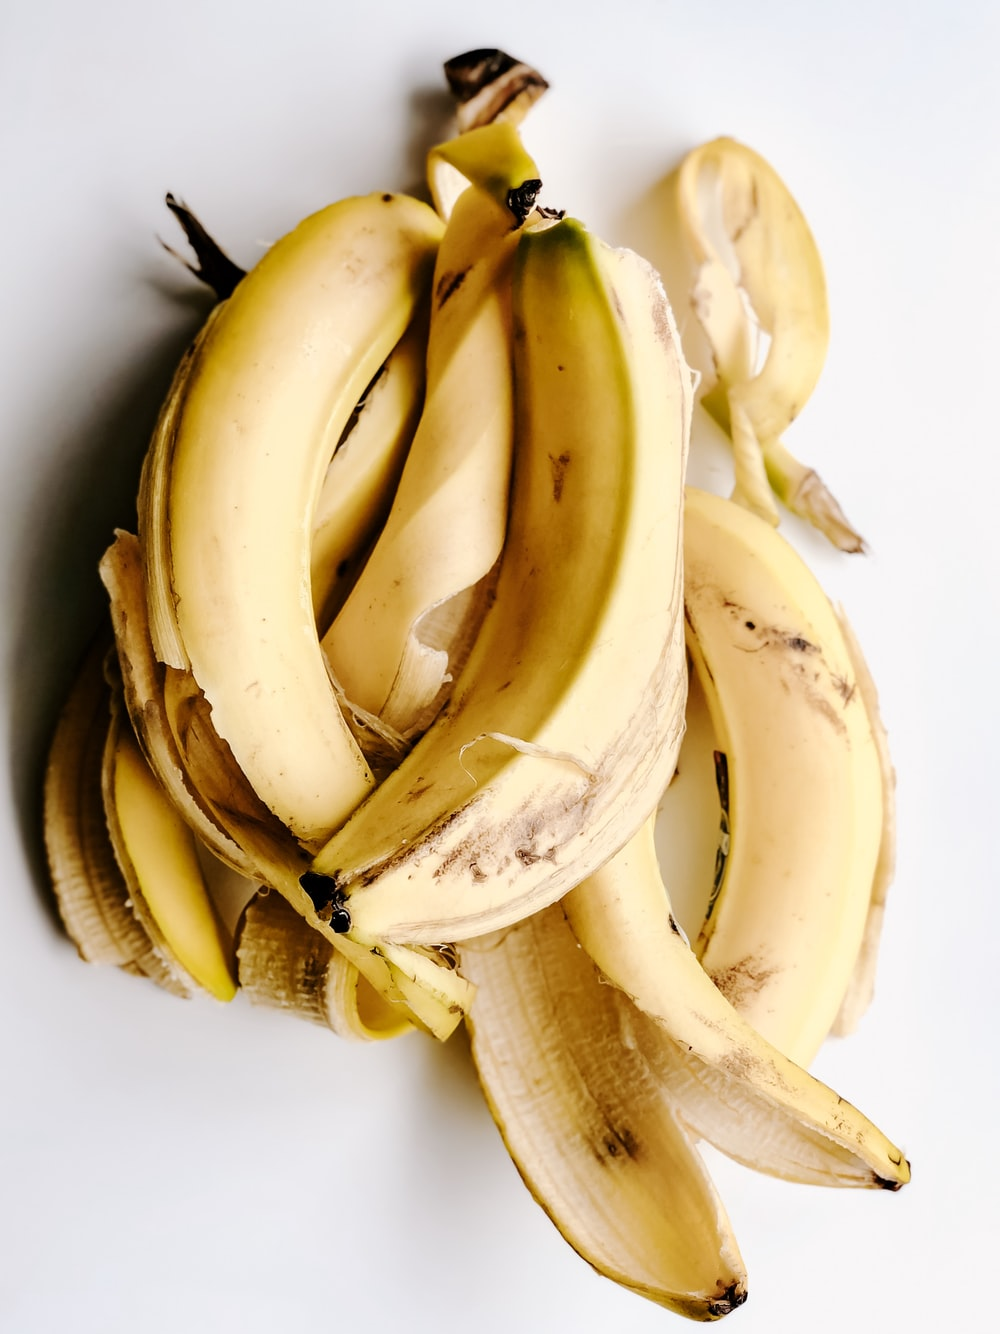 yellow banana peels